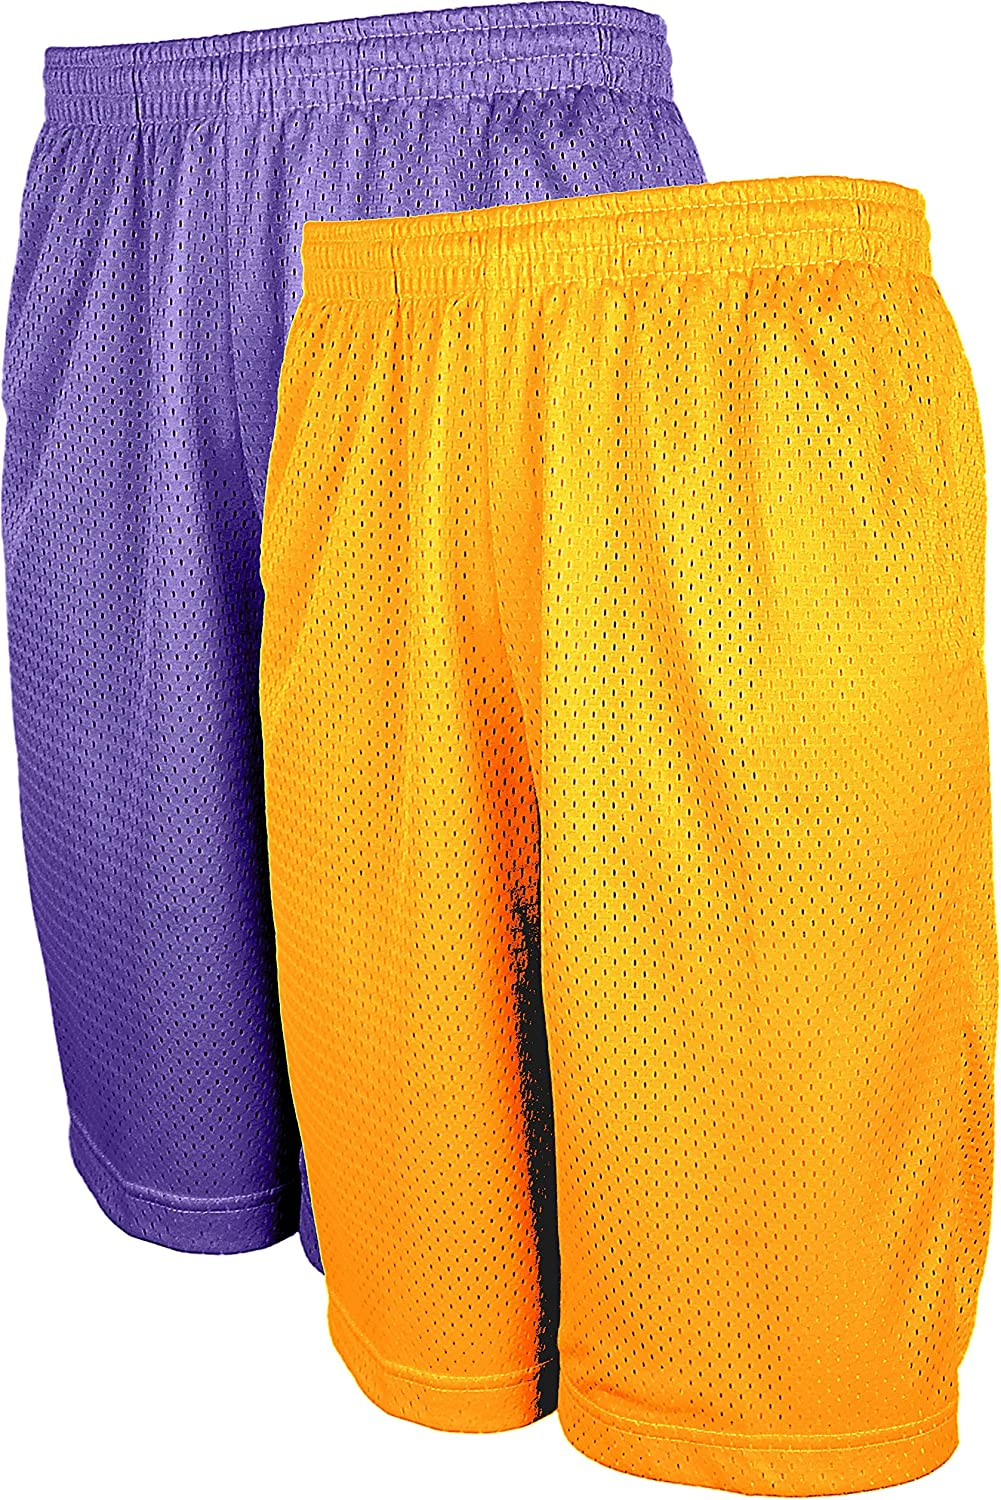 TL Men's Athletic Gym Workout Direct stock discount sale M Pockets with Lightweight Shorts